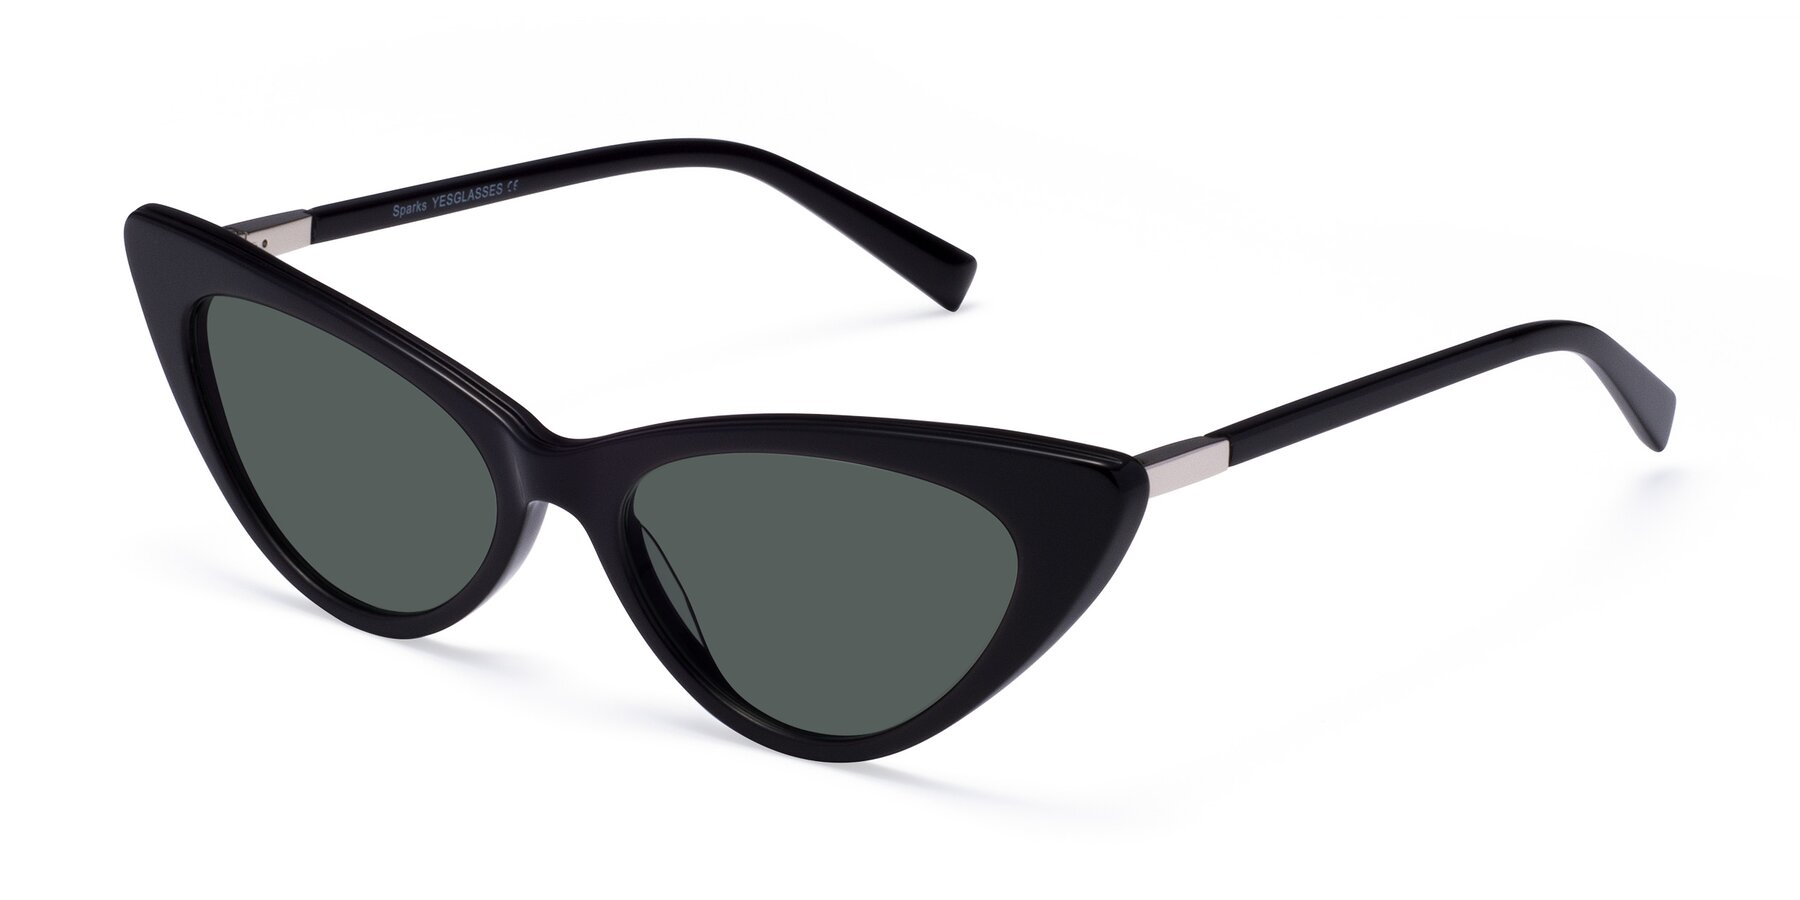 Angle of Sparks in Black with Gray Polarized Lenses